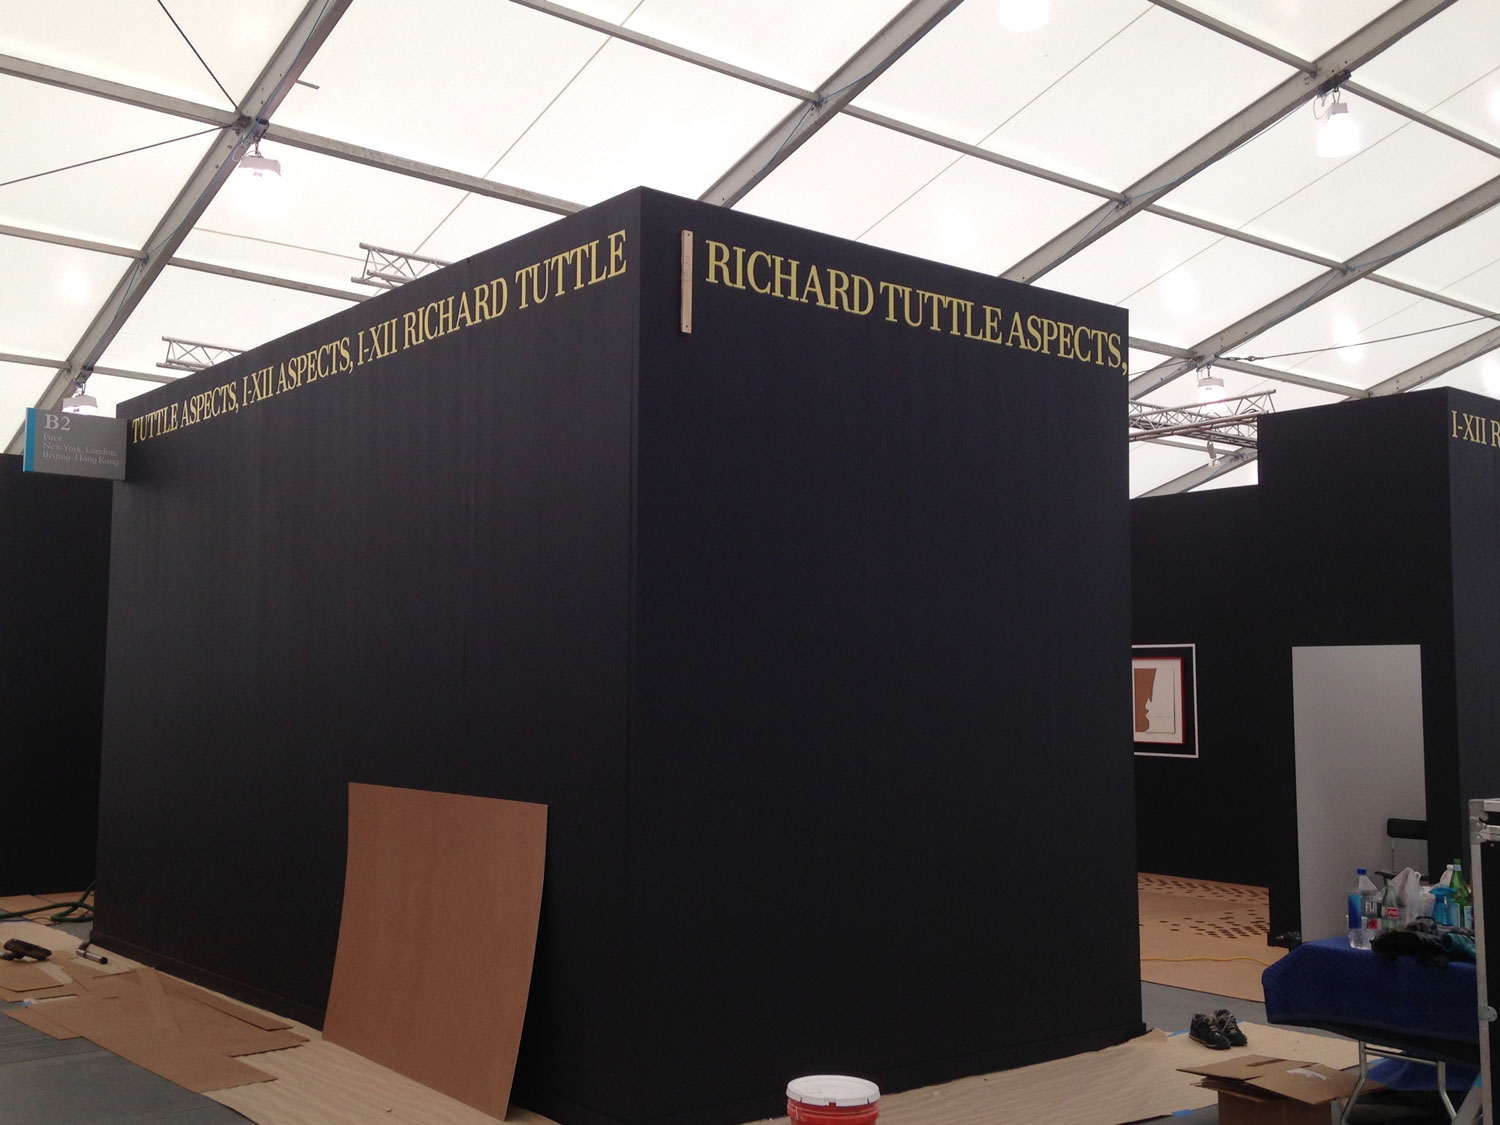 Hand Painted Lettering for Pace Gallery- Richard Tuttle- Frieze Art Fair